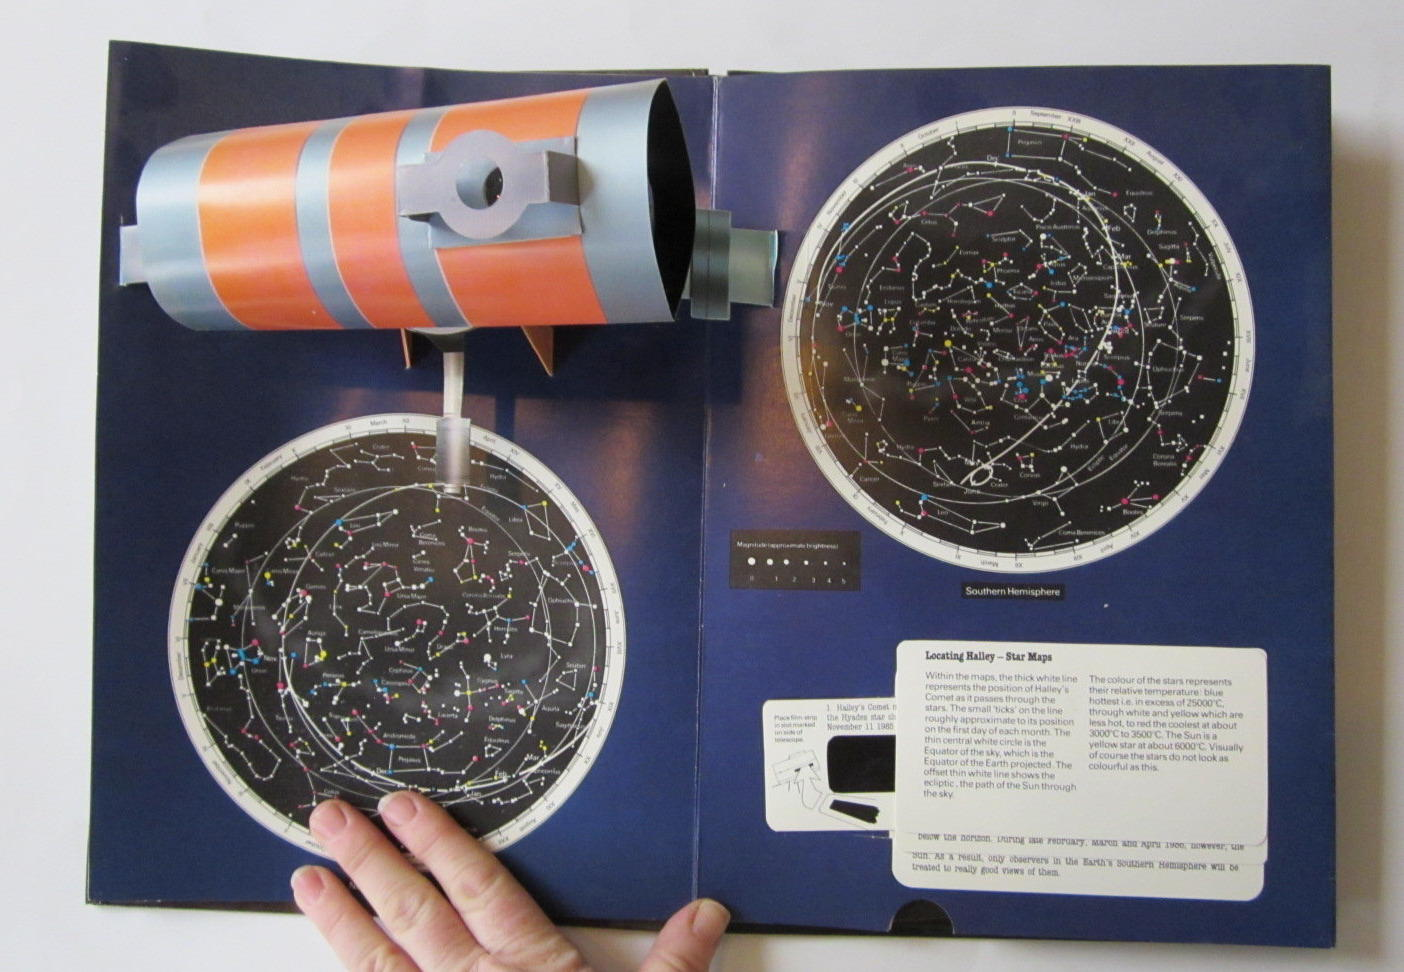 Photo of HALLEY'S COMET POP-UP BOOK written by Moore, Patrick Couper, Heather illustrated by Doherty, Paul published by Deans International Publishing (STOCK CODE: 1401042)  for sale by Stella & Rose's Books